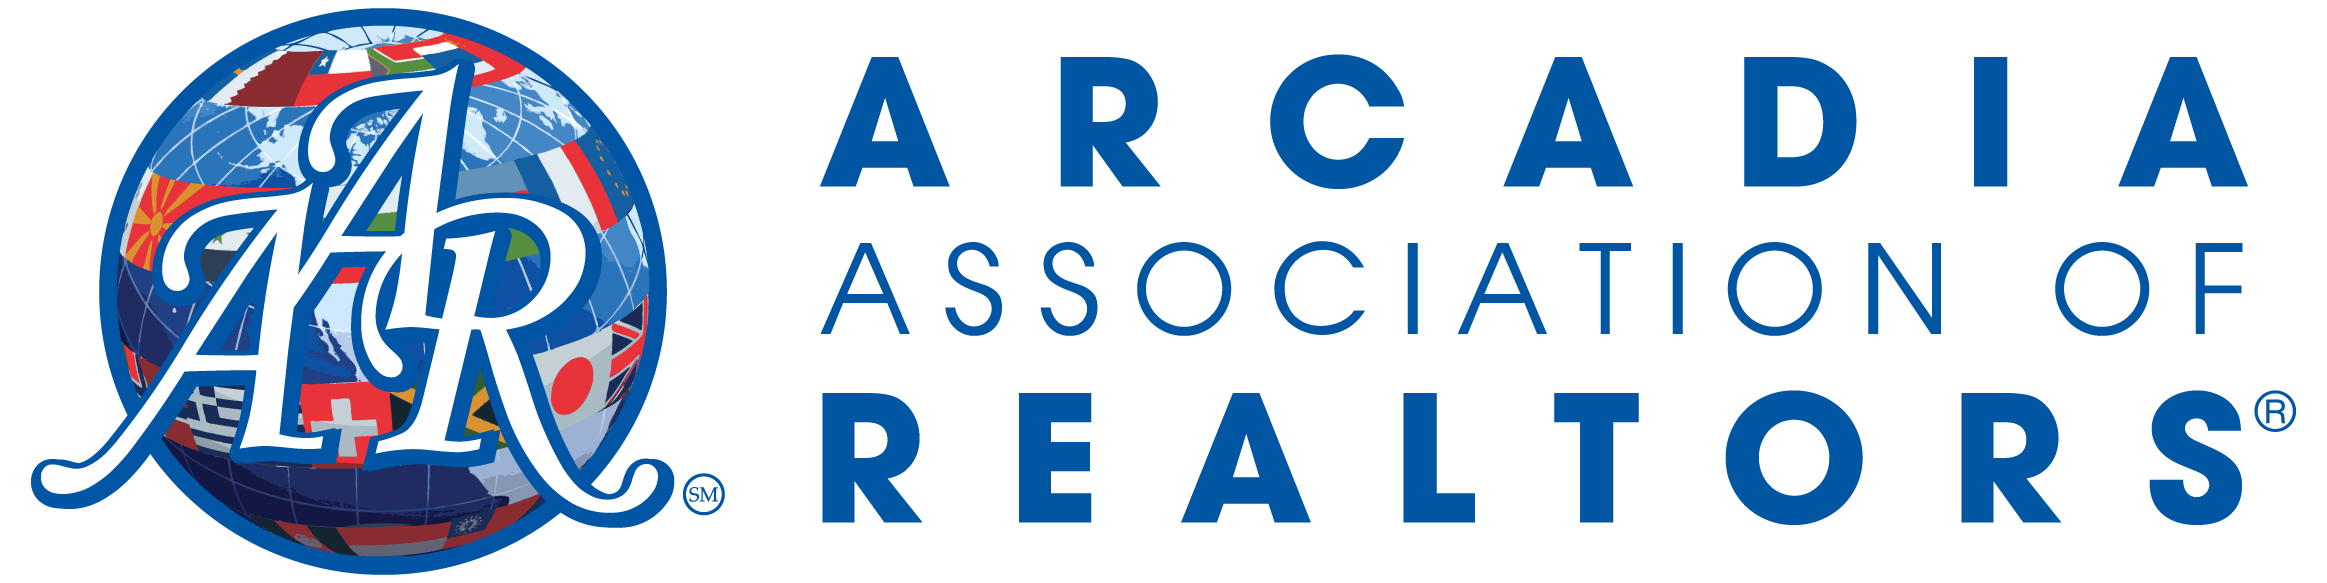 Arcadia Association of Realators